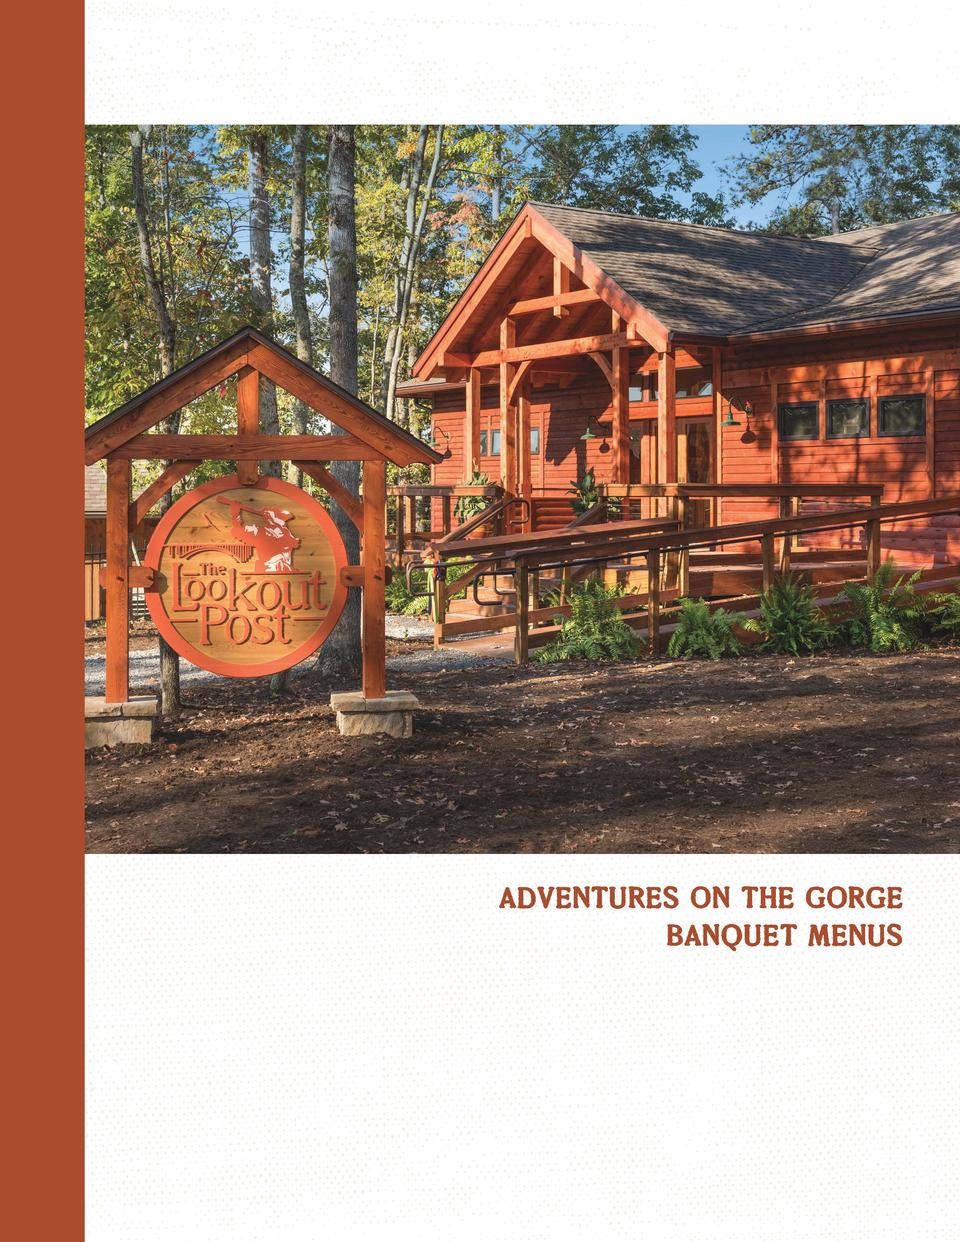 ADVENTURES ON THE GORGE BANQUET MENUS